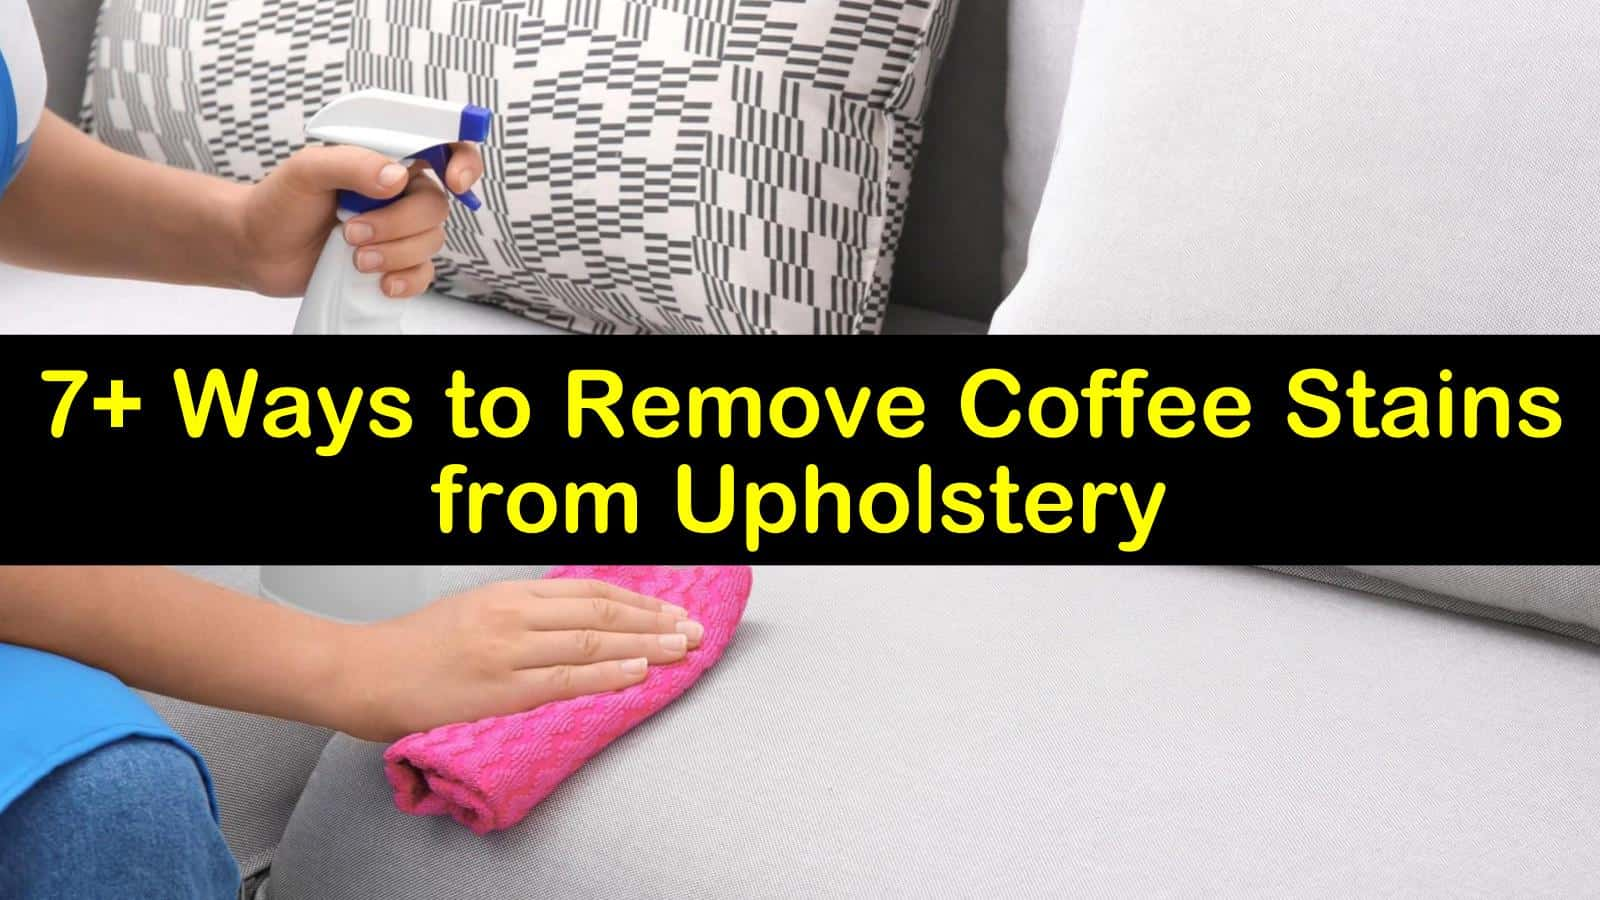 how to remove coffee stains from upholstery titleimg1